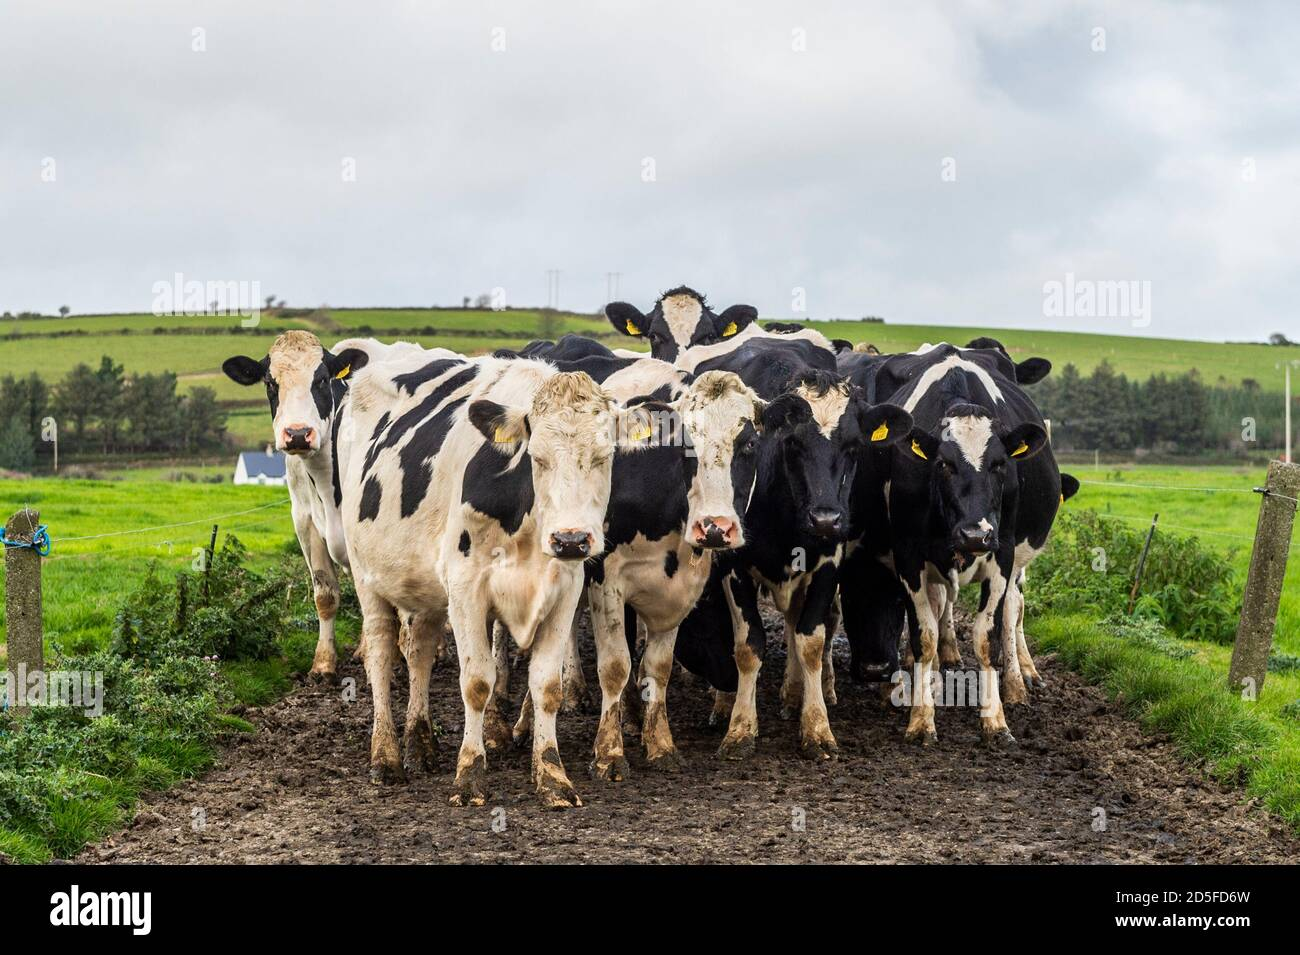 timoleague-west-cork-ireland-13th-oct-2020-a-100-strong-herd-of-dairy-cows-makes-its-way-to-the-sheds-on-the-timoleague-farm-of-john-dineen-the-cows-will-be-fed-before-being-milked-credit-ag-newsalamy-live-news-2D5FD6W.jpg